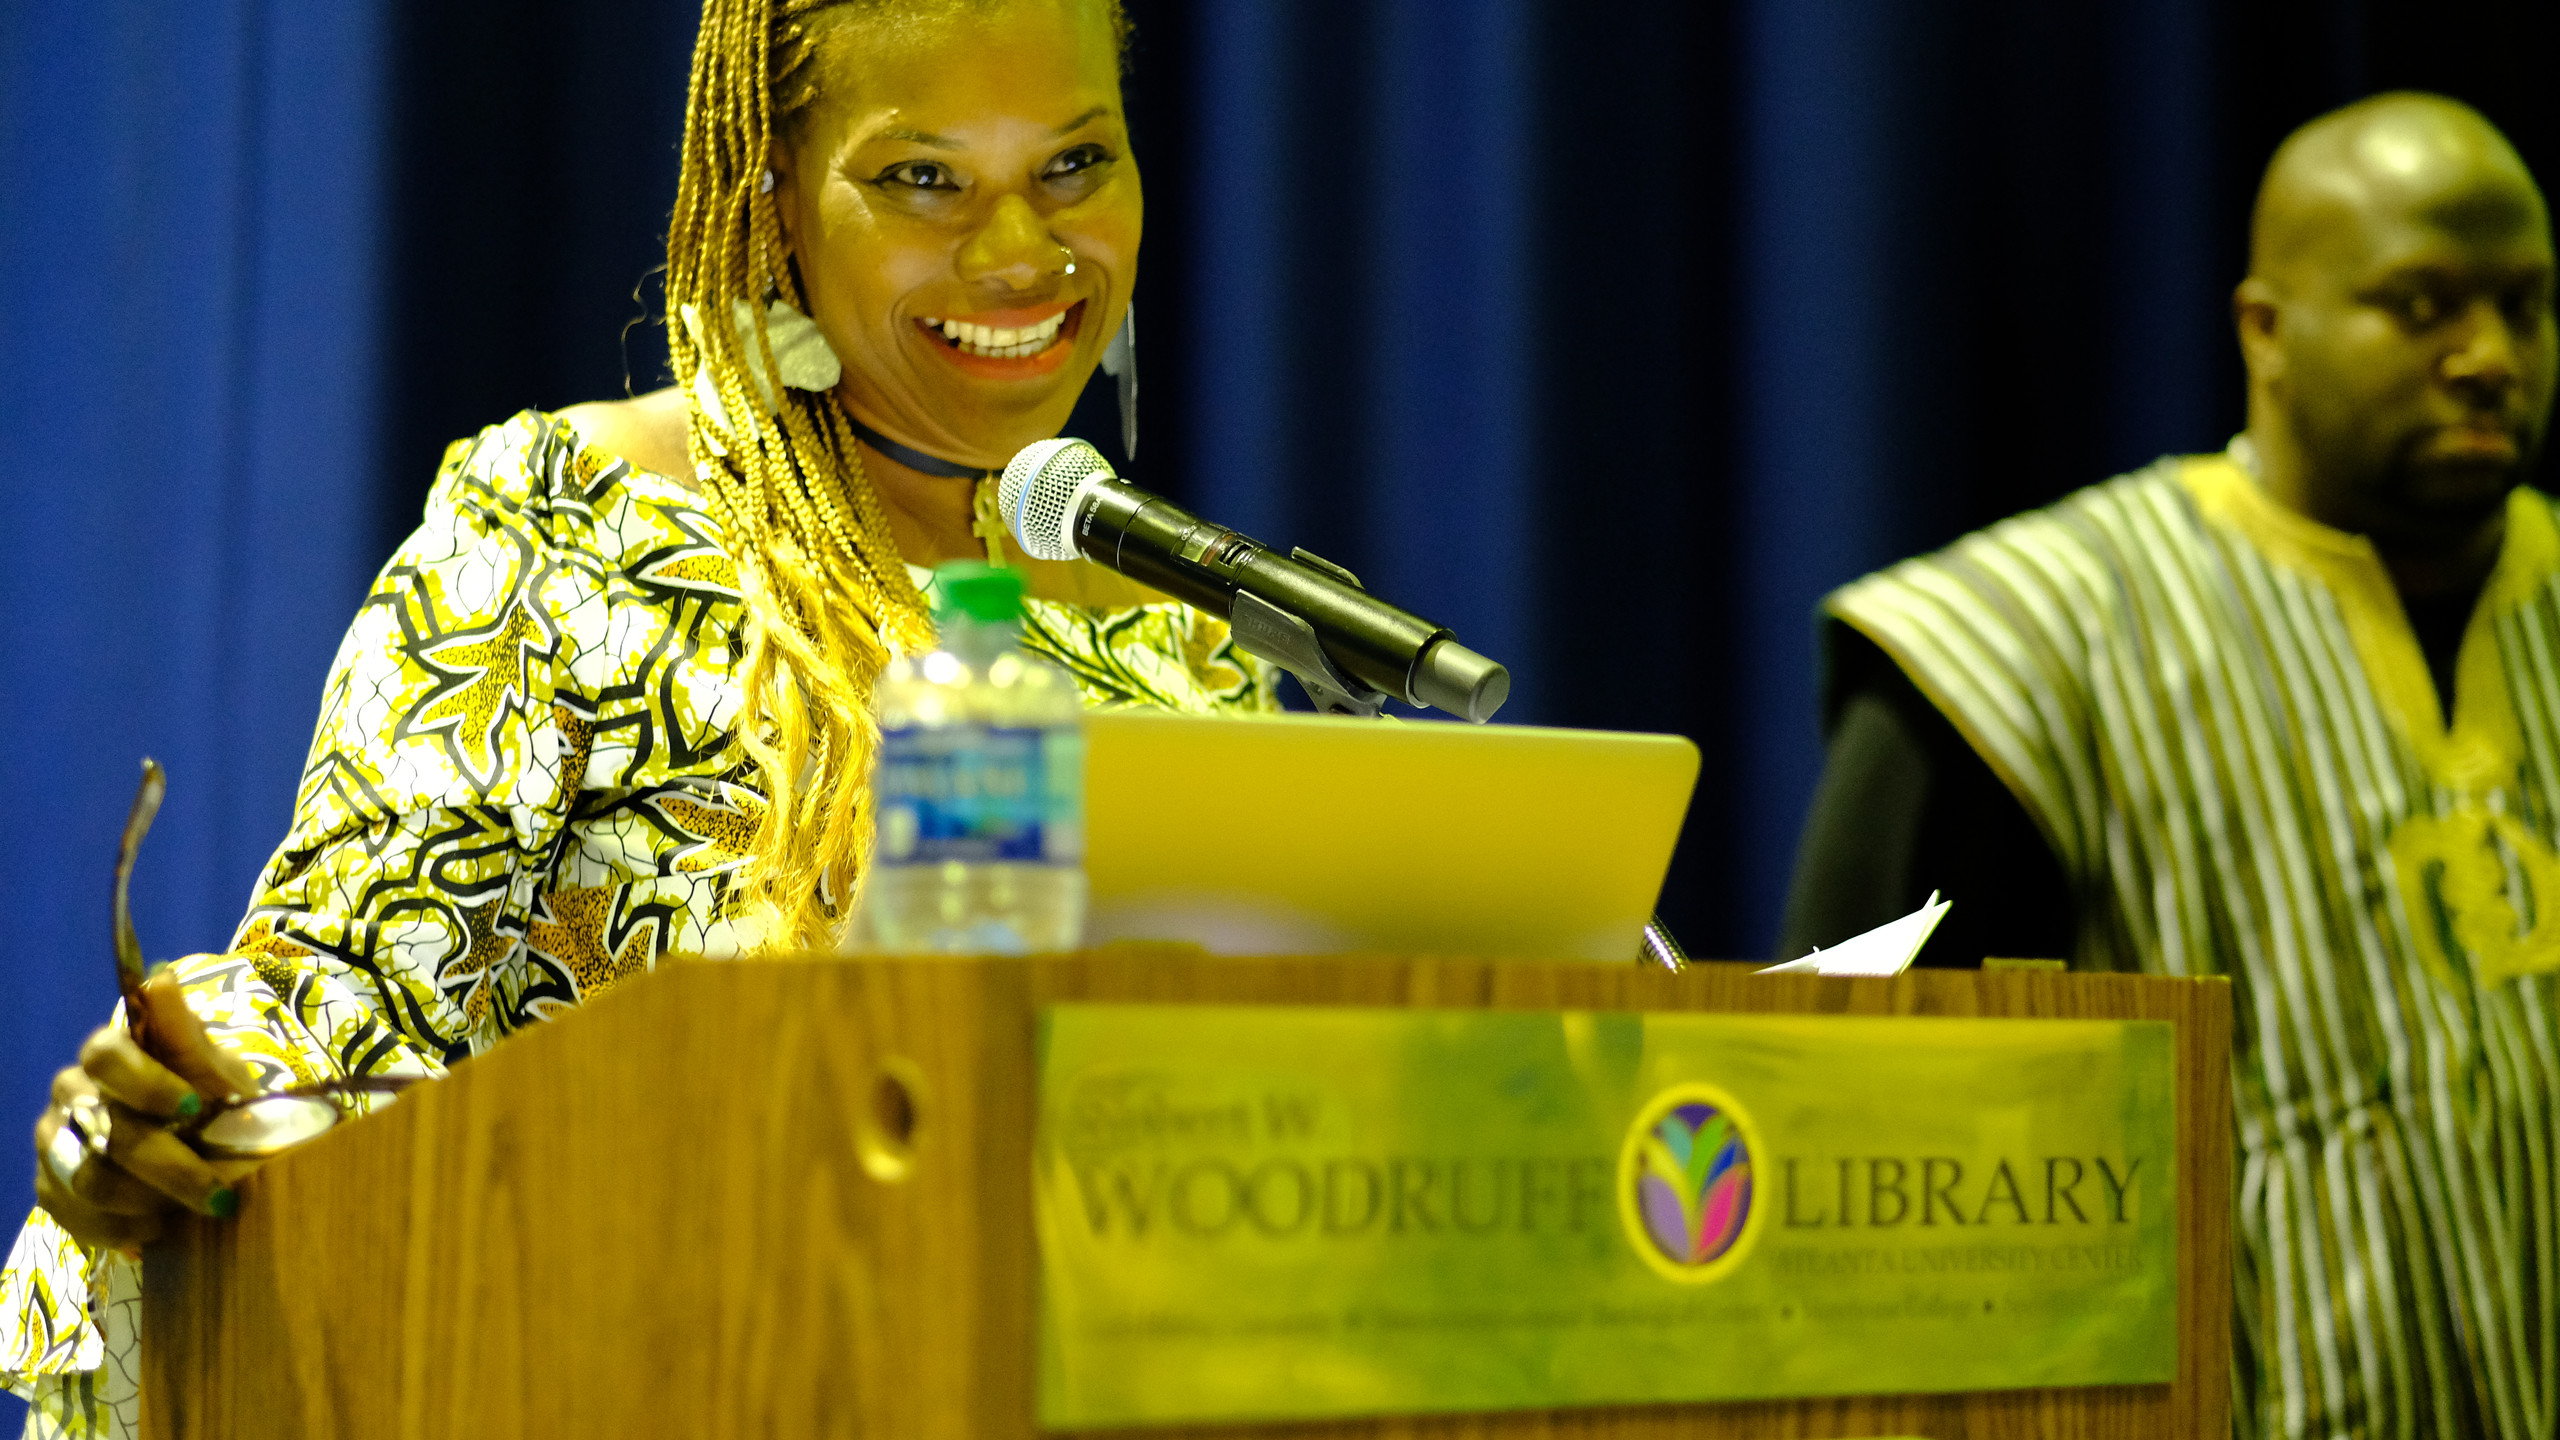 Yvette Modesting, Founding ARAAC member keynoted the event. Audience was invited to work with ARAAC or other organizations that are fighting for the liberation of African people in the Americas.